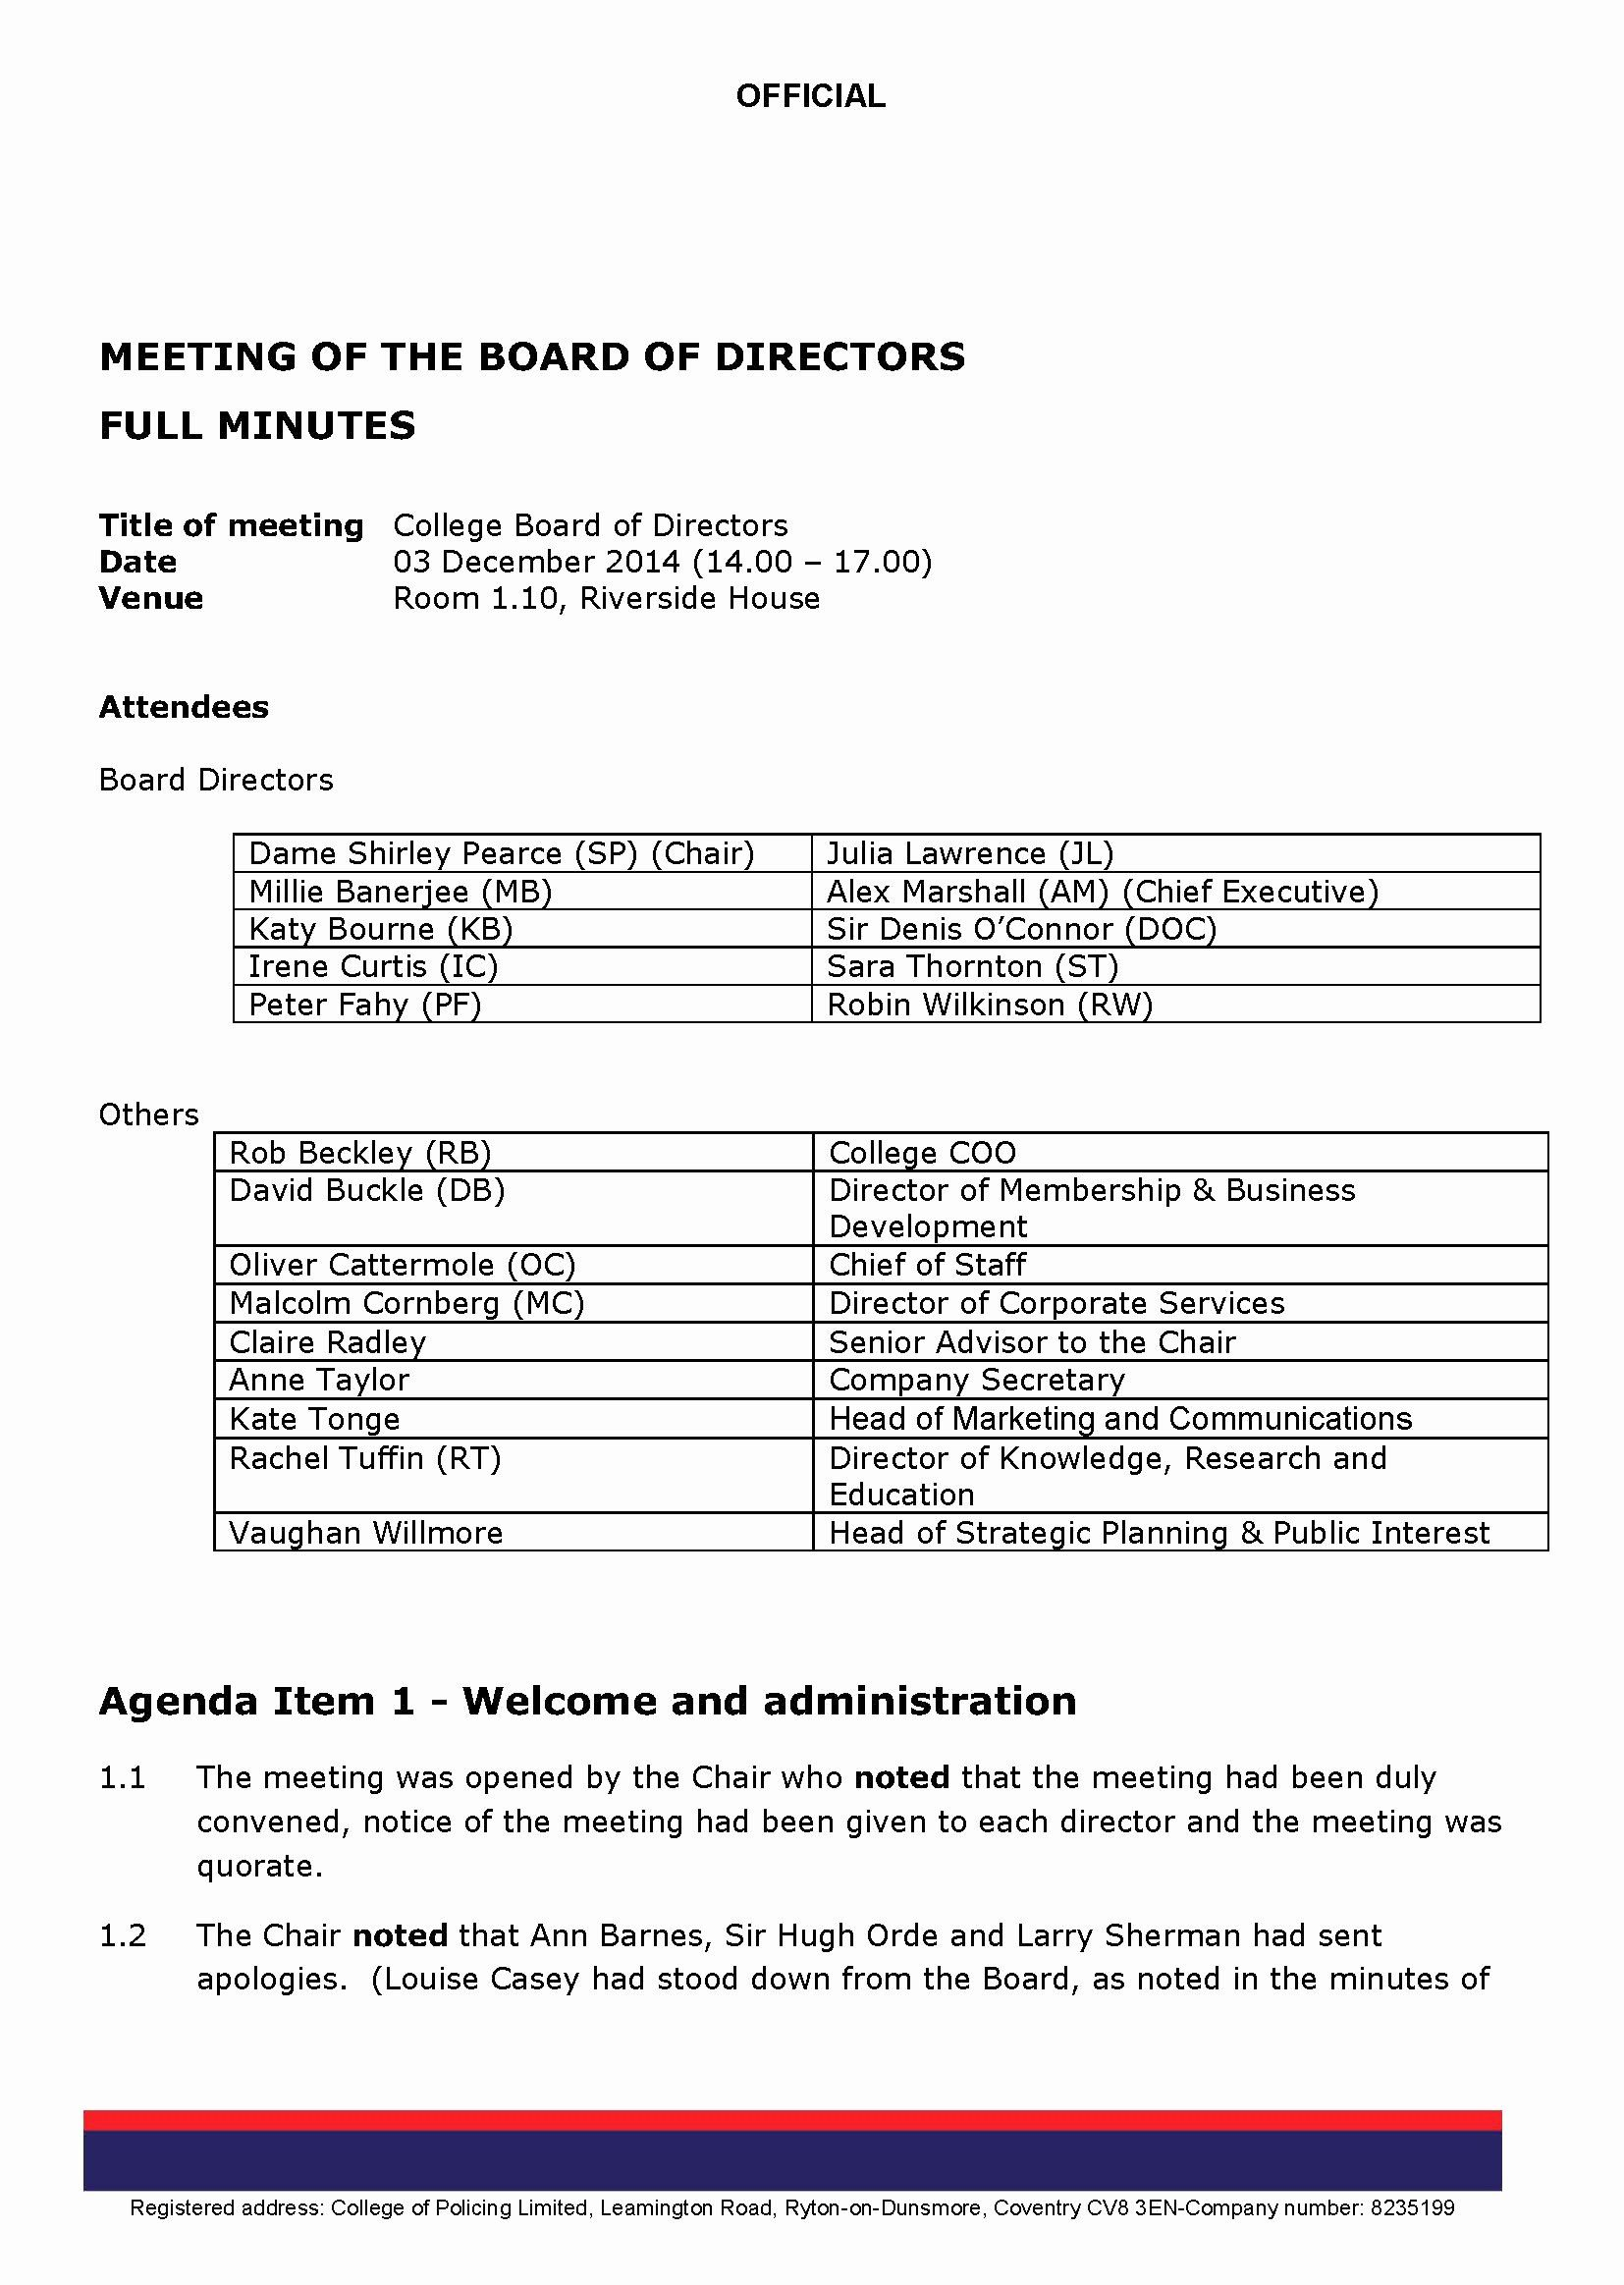 Corporate Board Of Directors Meeting Agenda Template In 2020